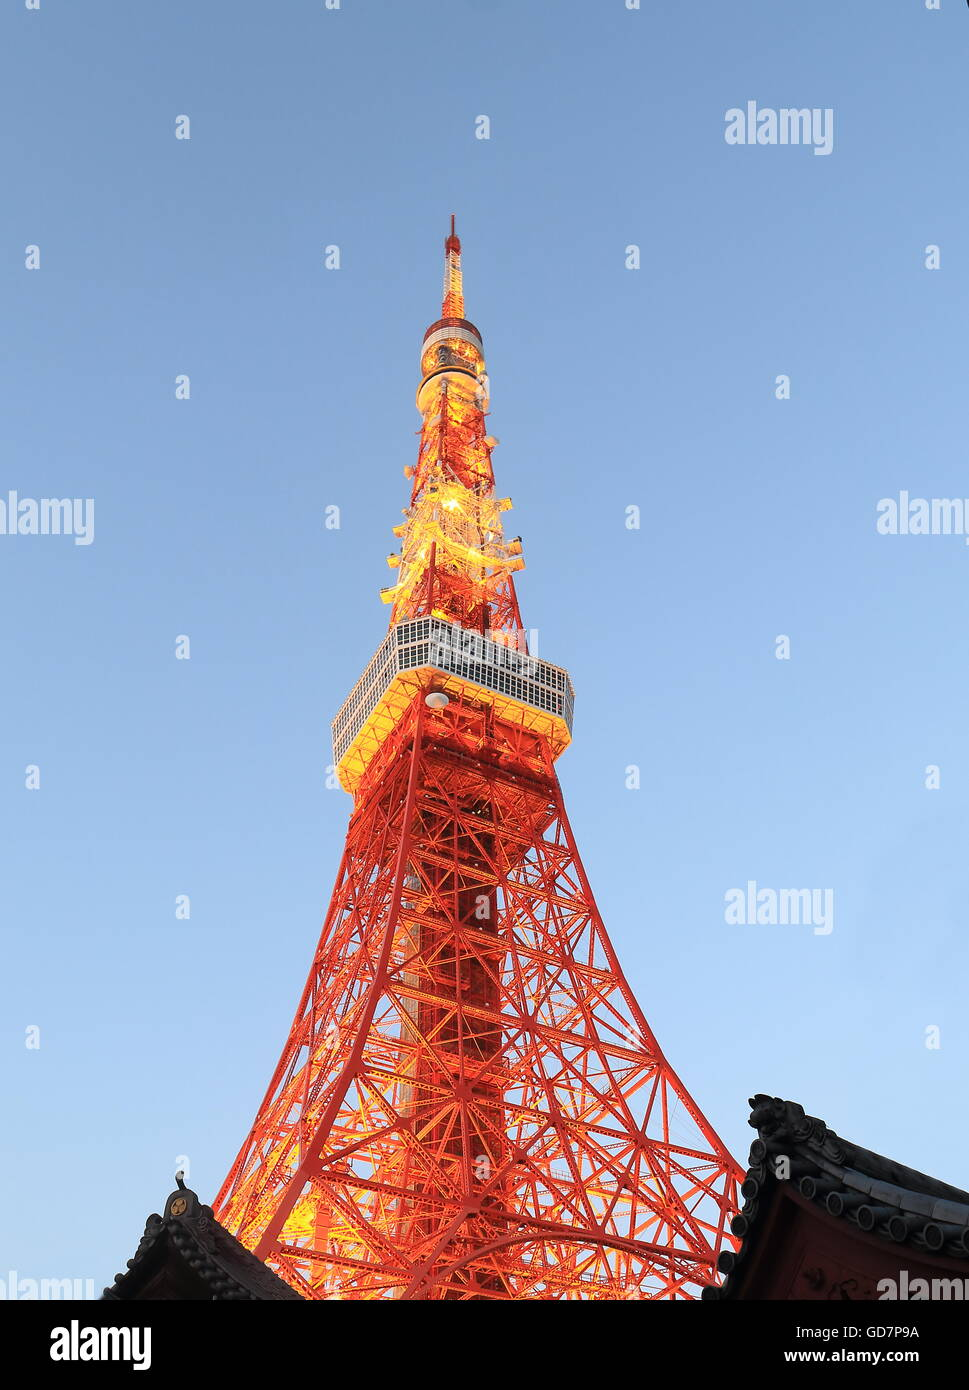 Iconic Tokyo Tower over Japanese kawara roof in Tokyo Japan. - Stock Image